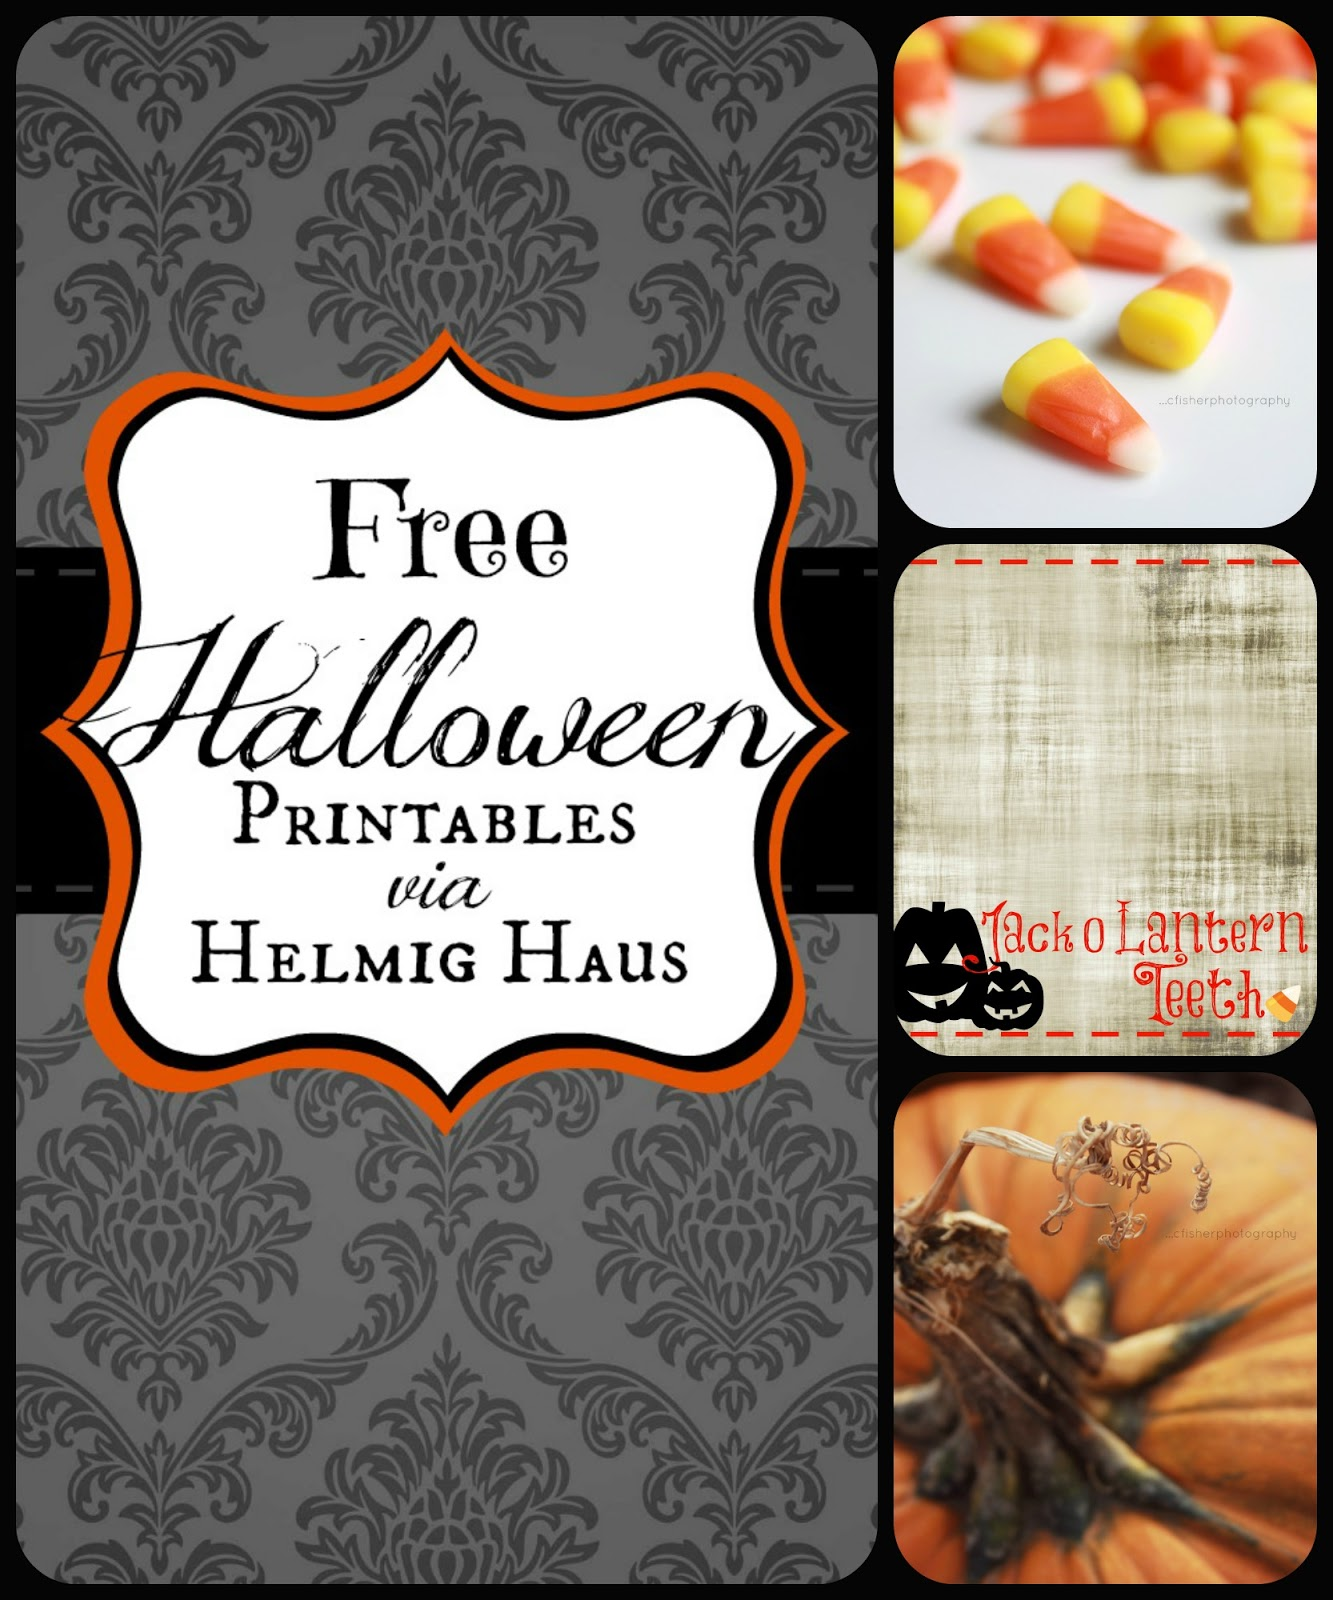 Free Halloween Party Table Labels Free printables to help you decorate for Halloween courtesy of Helmig Haus via http://helmighaus.blogspot.com/